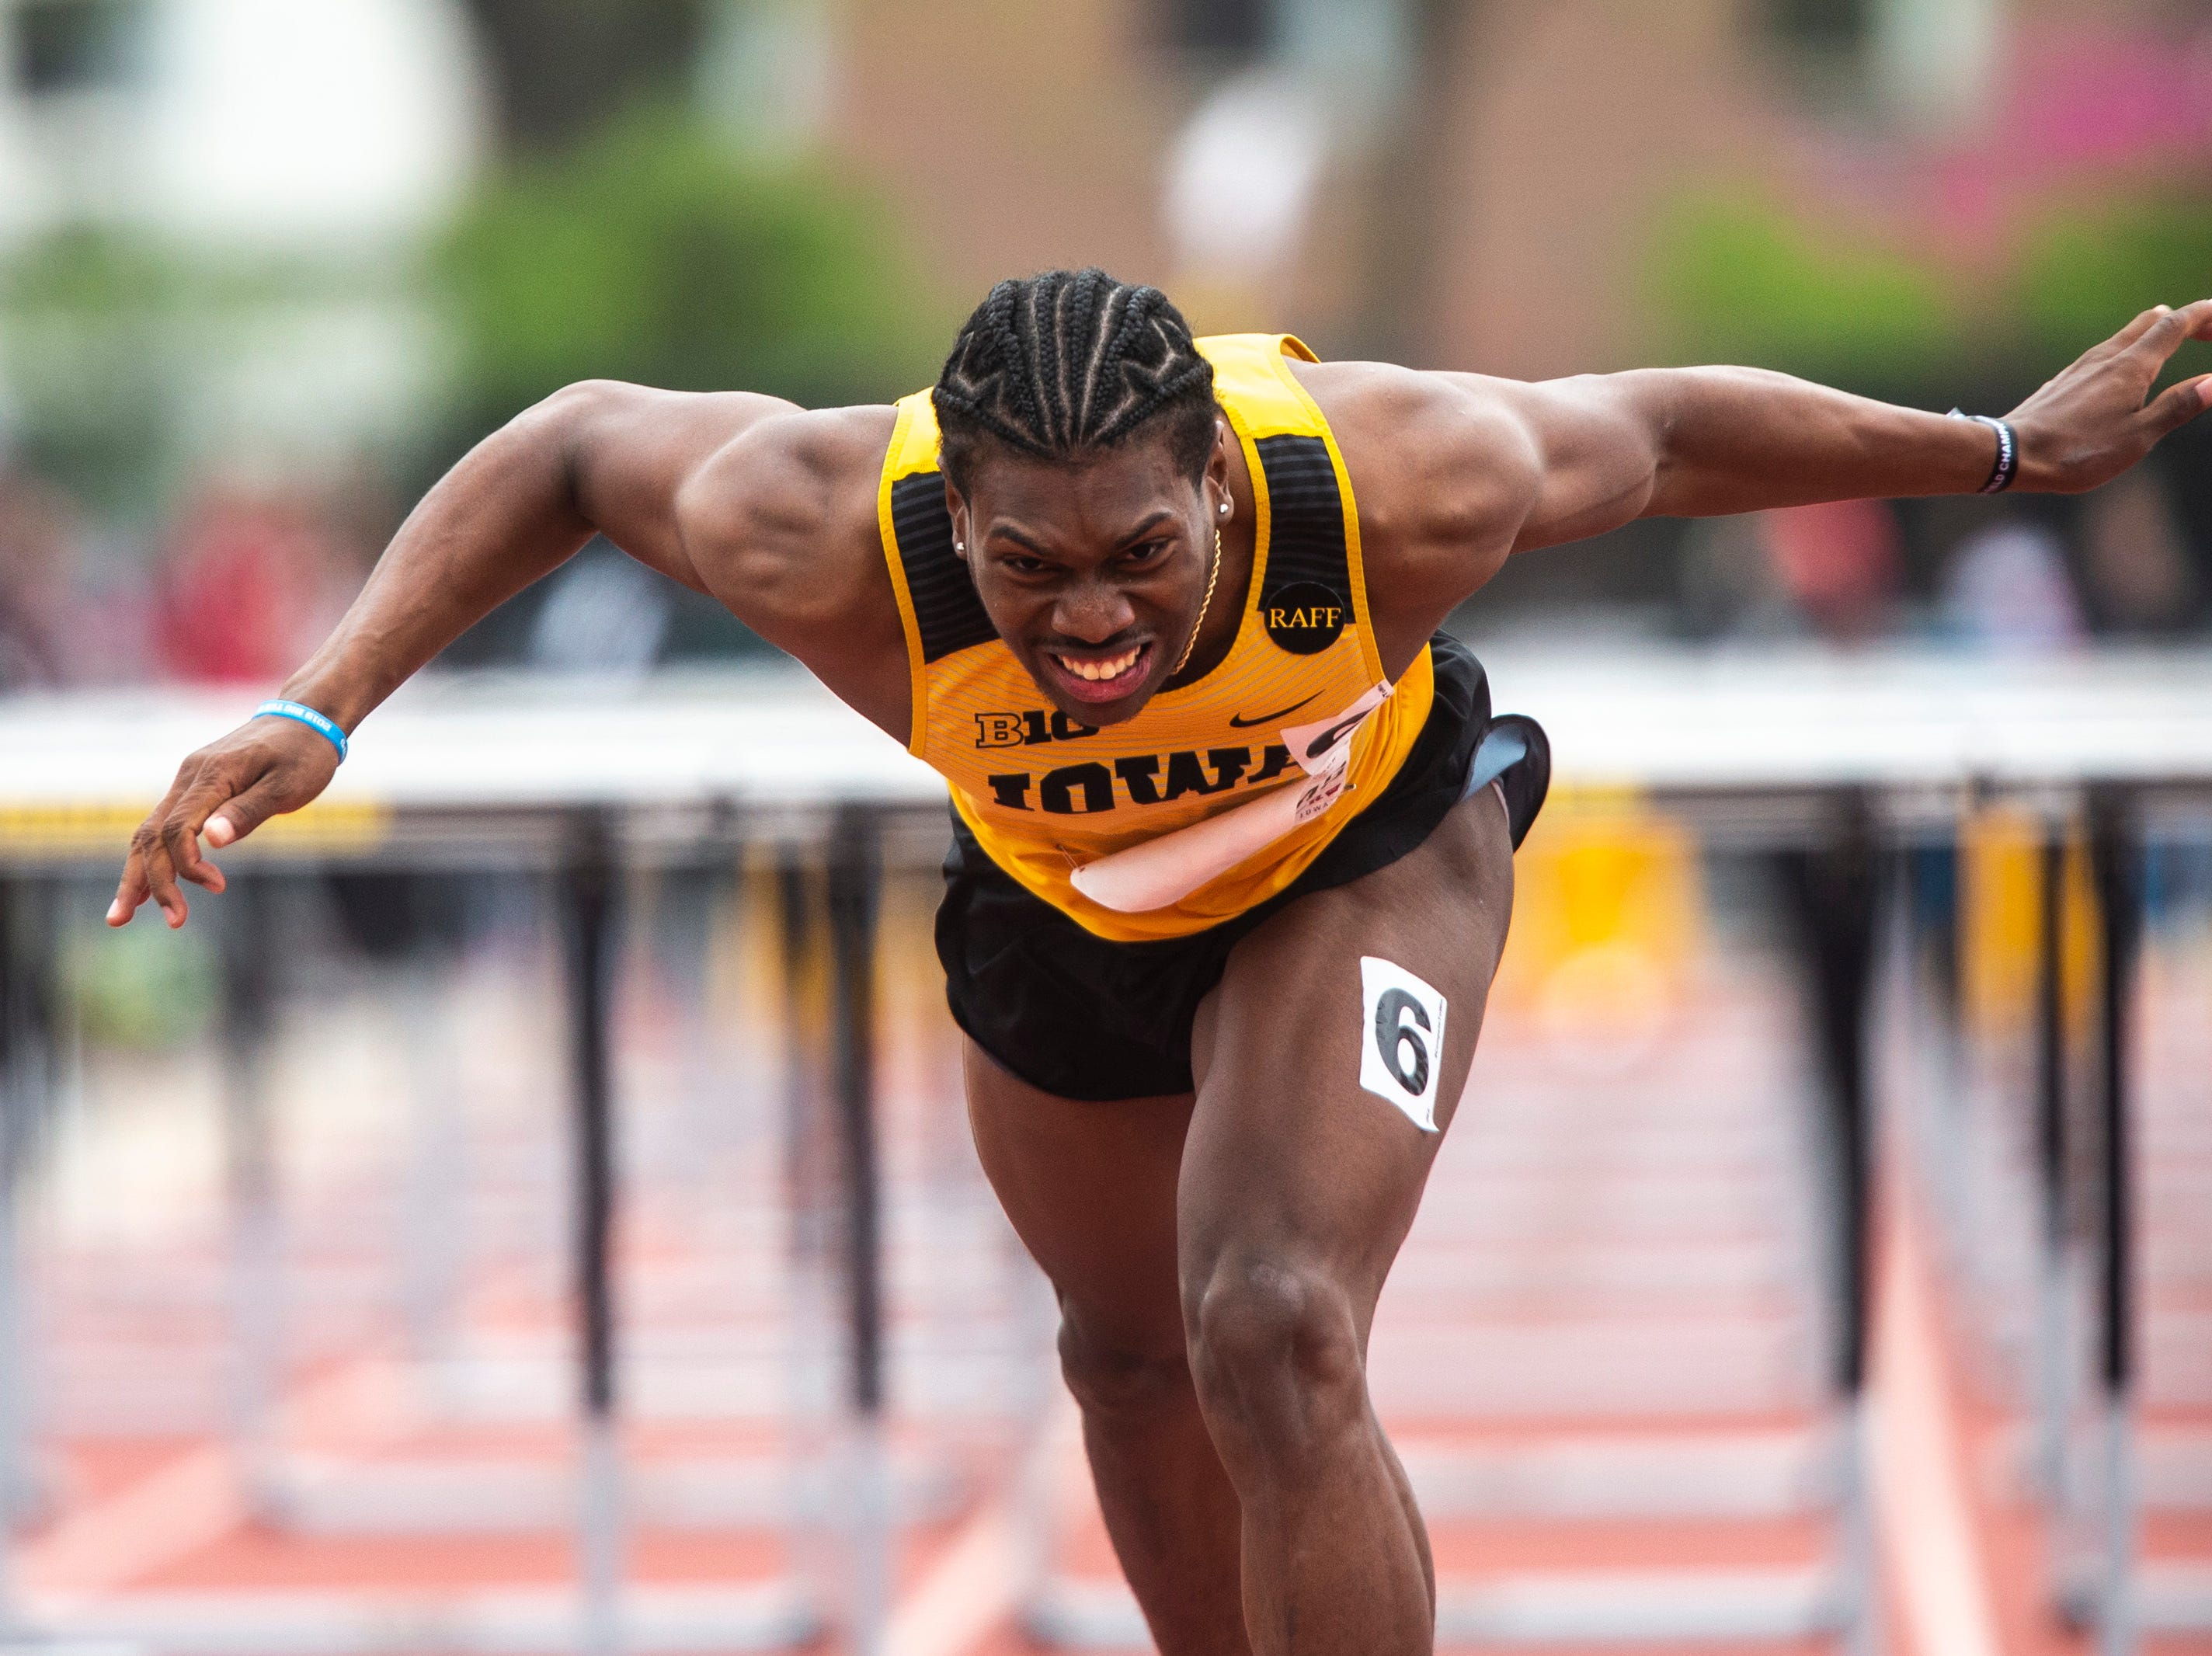 Iowa's Anthony Williams lunges over the finish line during the final day of Big Ten track and field outdoor championships, Sunday, May 12, 2019, at Francis X. Cretzmeyer Track on the University of Iowa campus in Iowa City, Iowa. Williams finished third, with a time of 13.81.